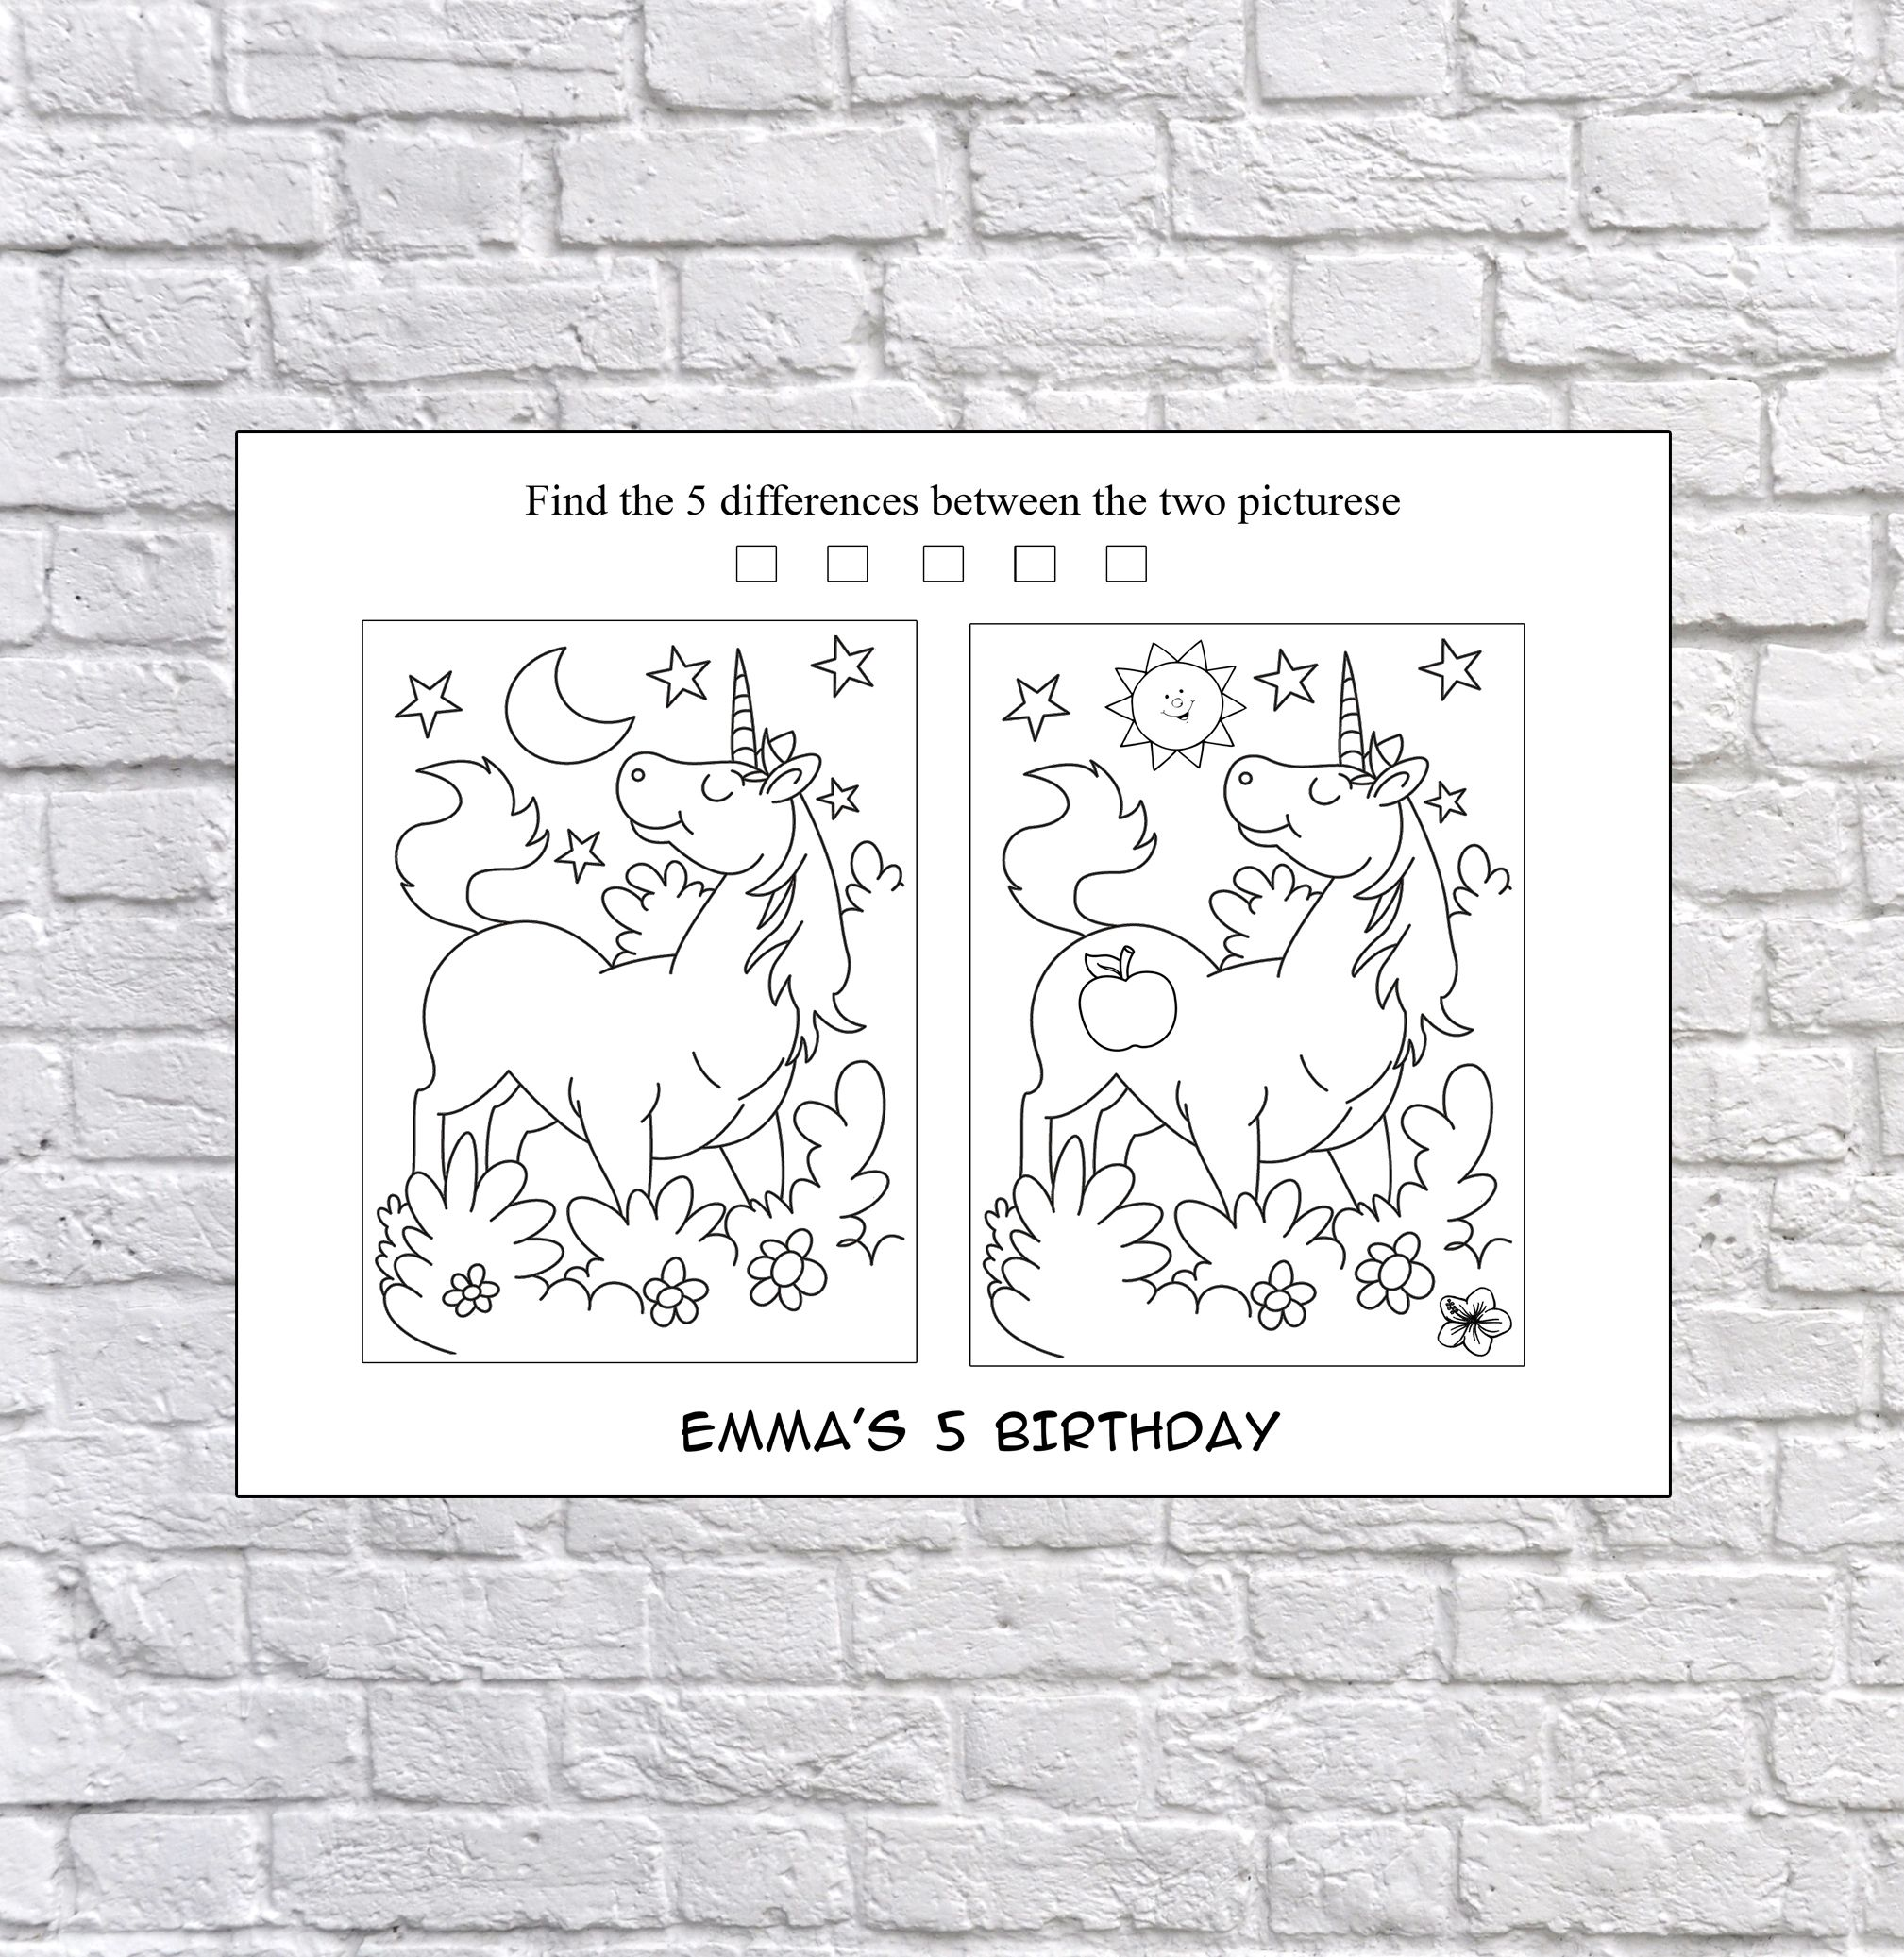 Party Games Coloring Coloring Page Activity Pages Zootopia Color Page Unicorn Party Unicorn Colorful Party Unicorn Party Coloring Pages